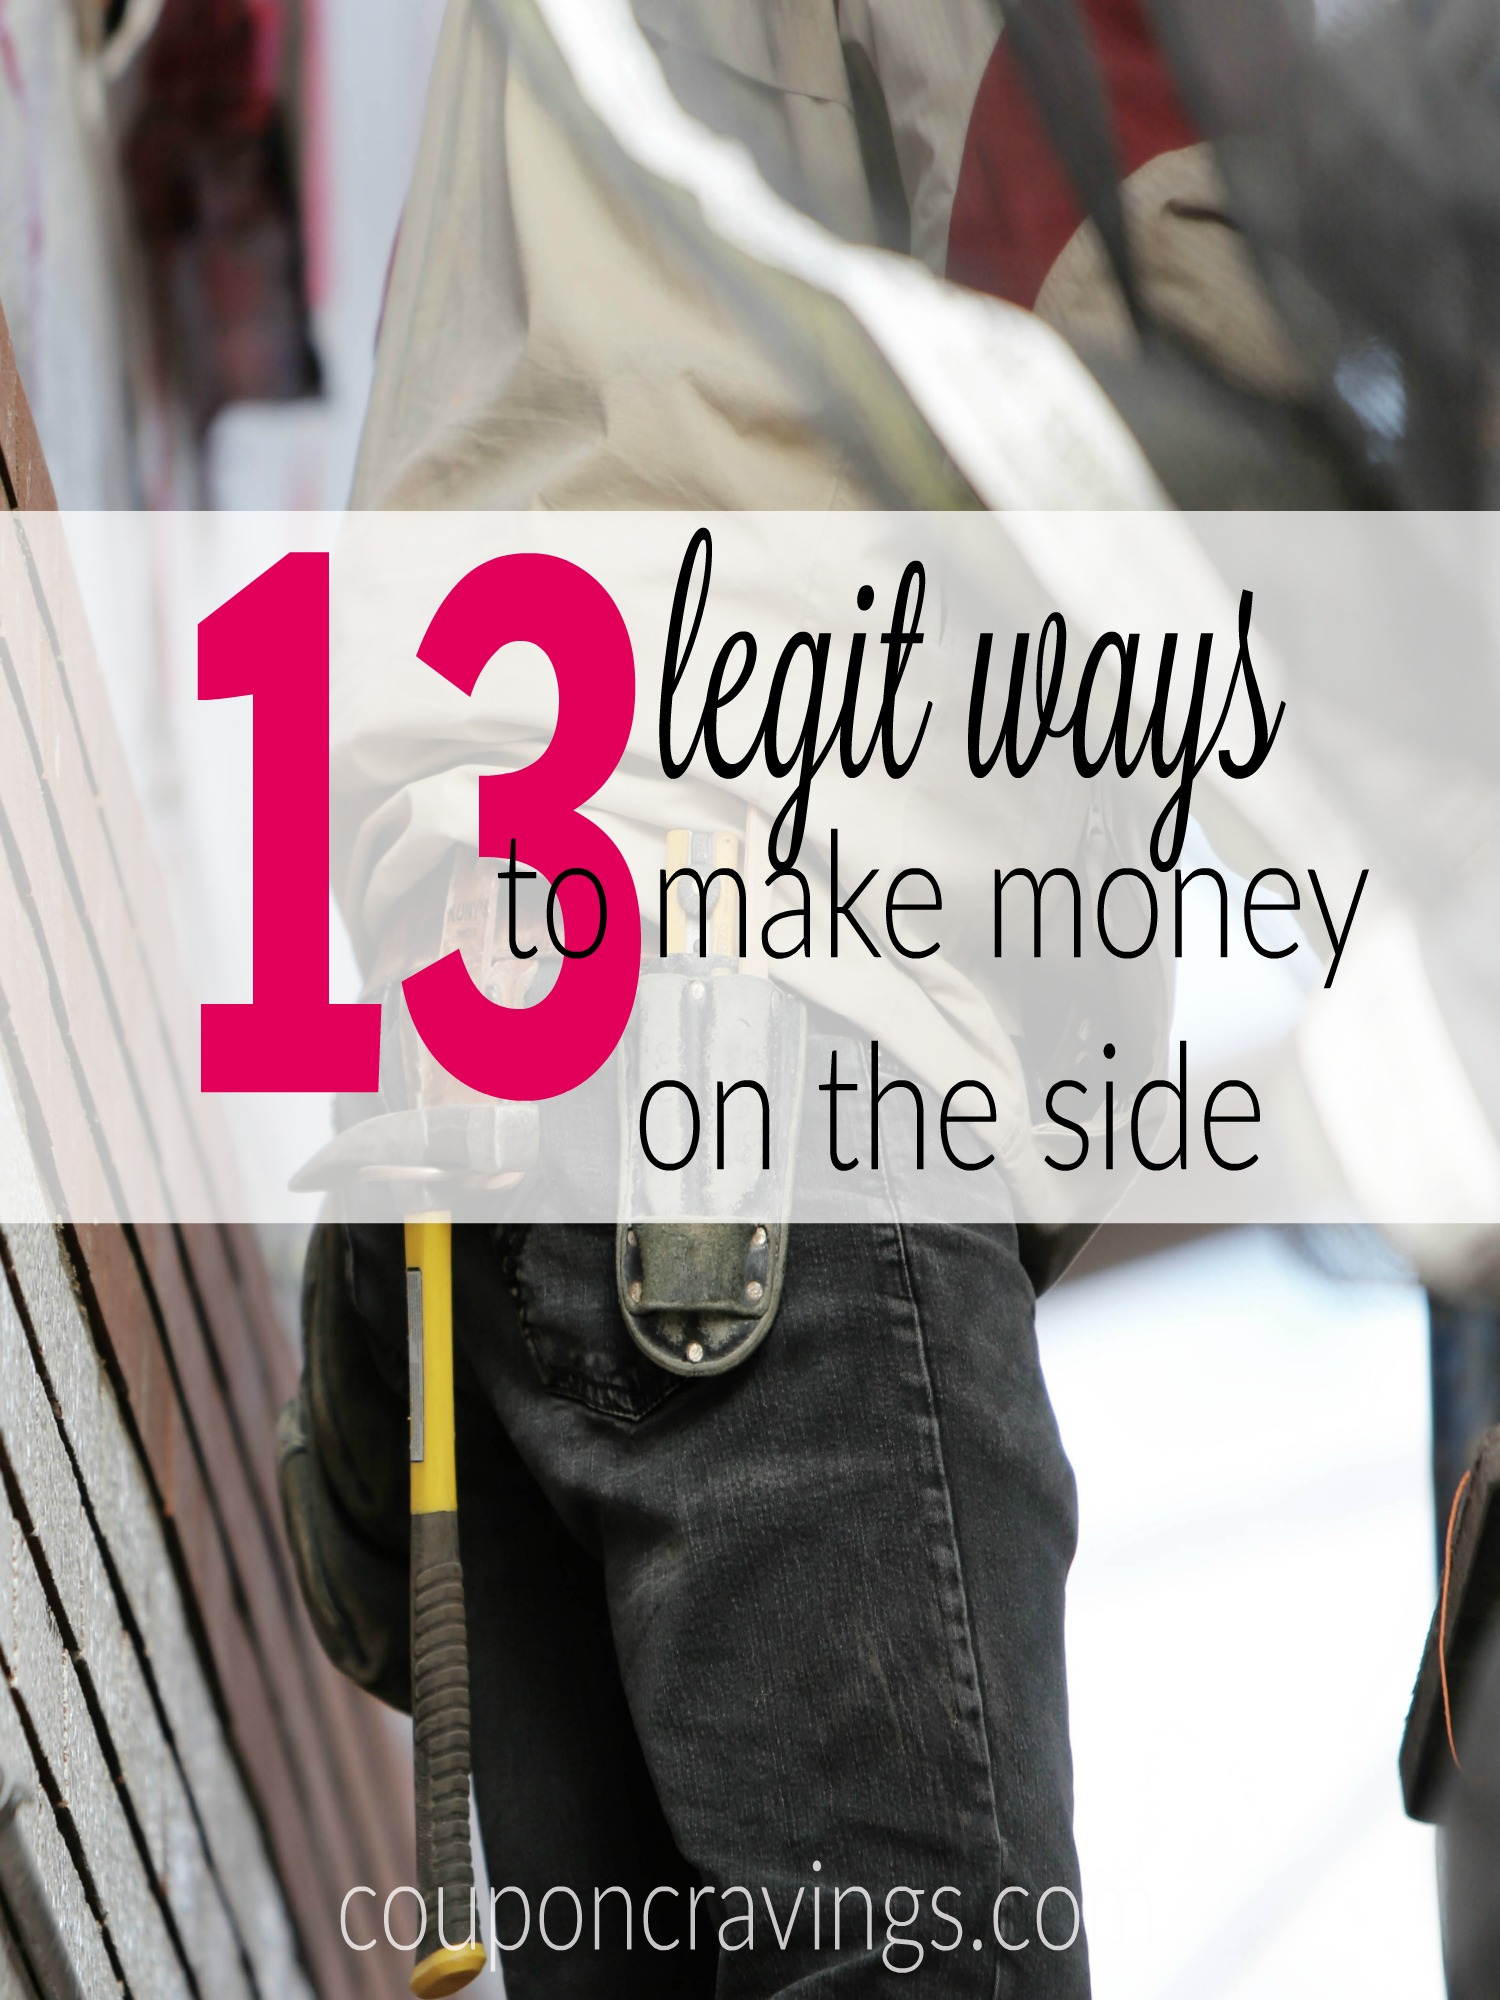 13 ways to make money on the side - ideas that are legit and real. There are a couple ways in this post to earn over $600 per year. https://www.couponcravings.com